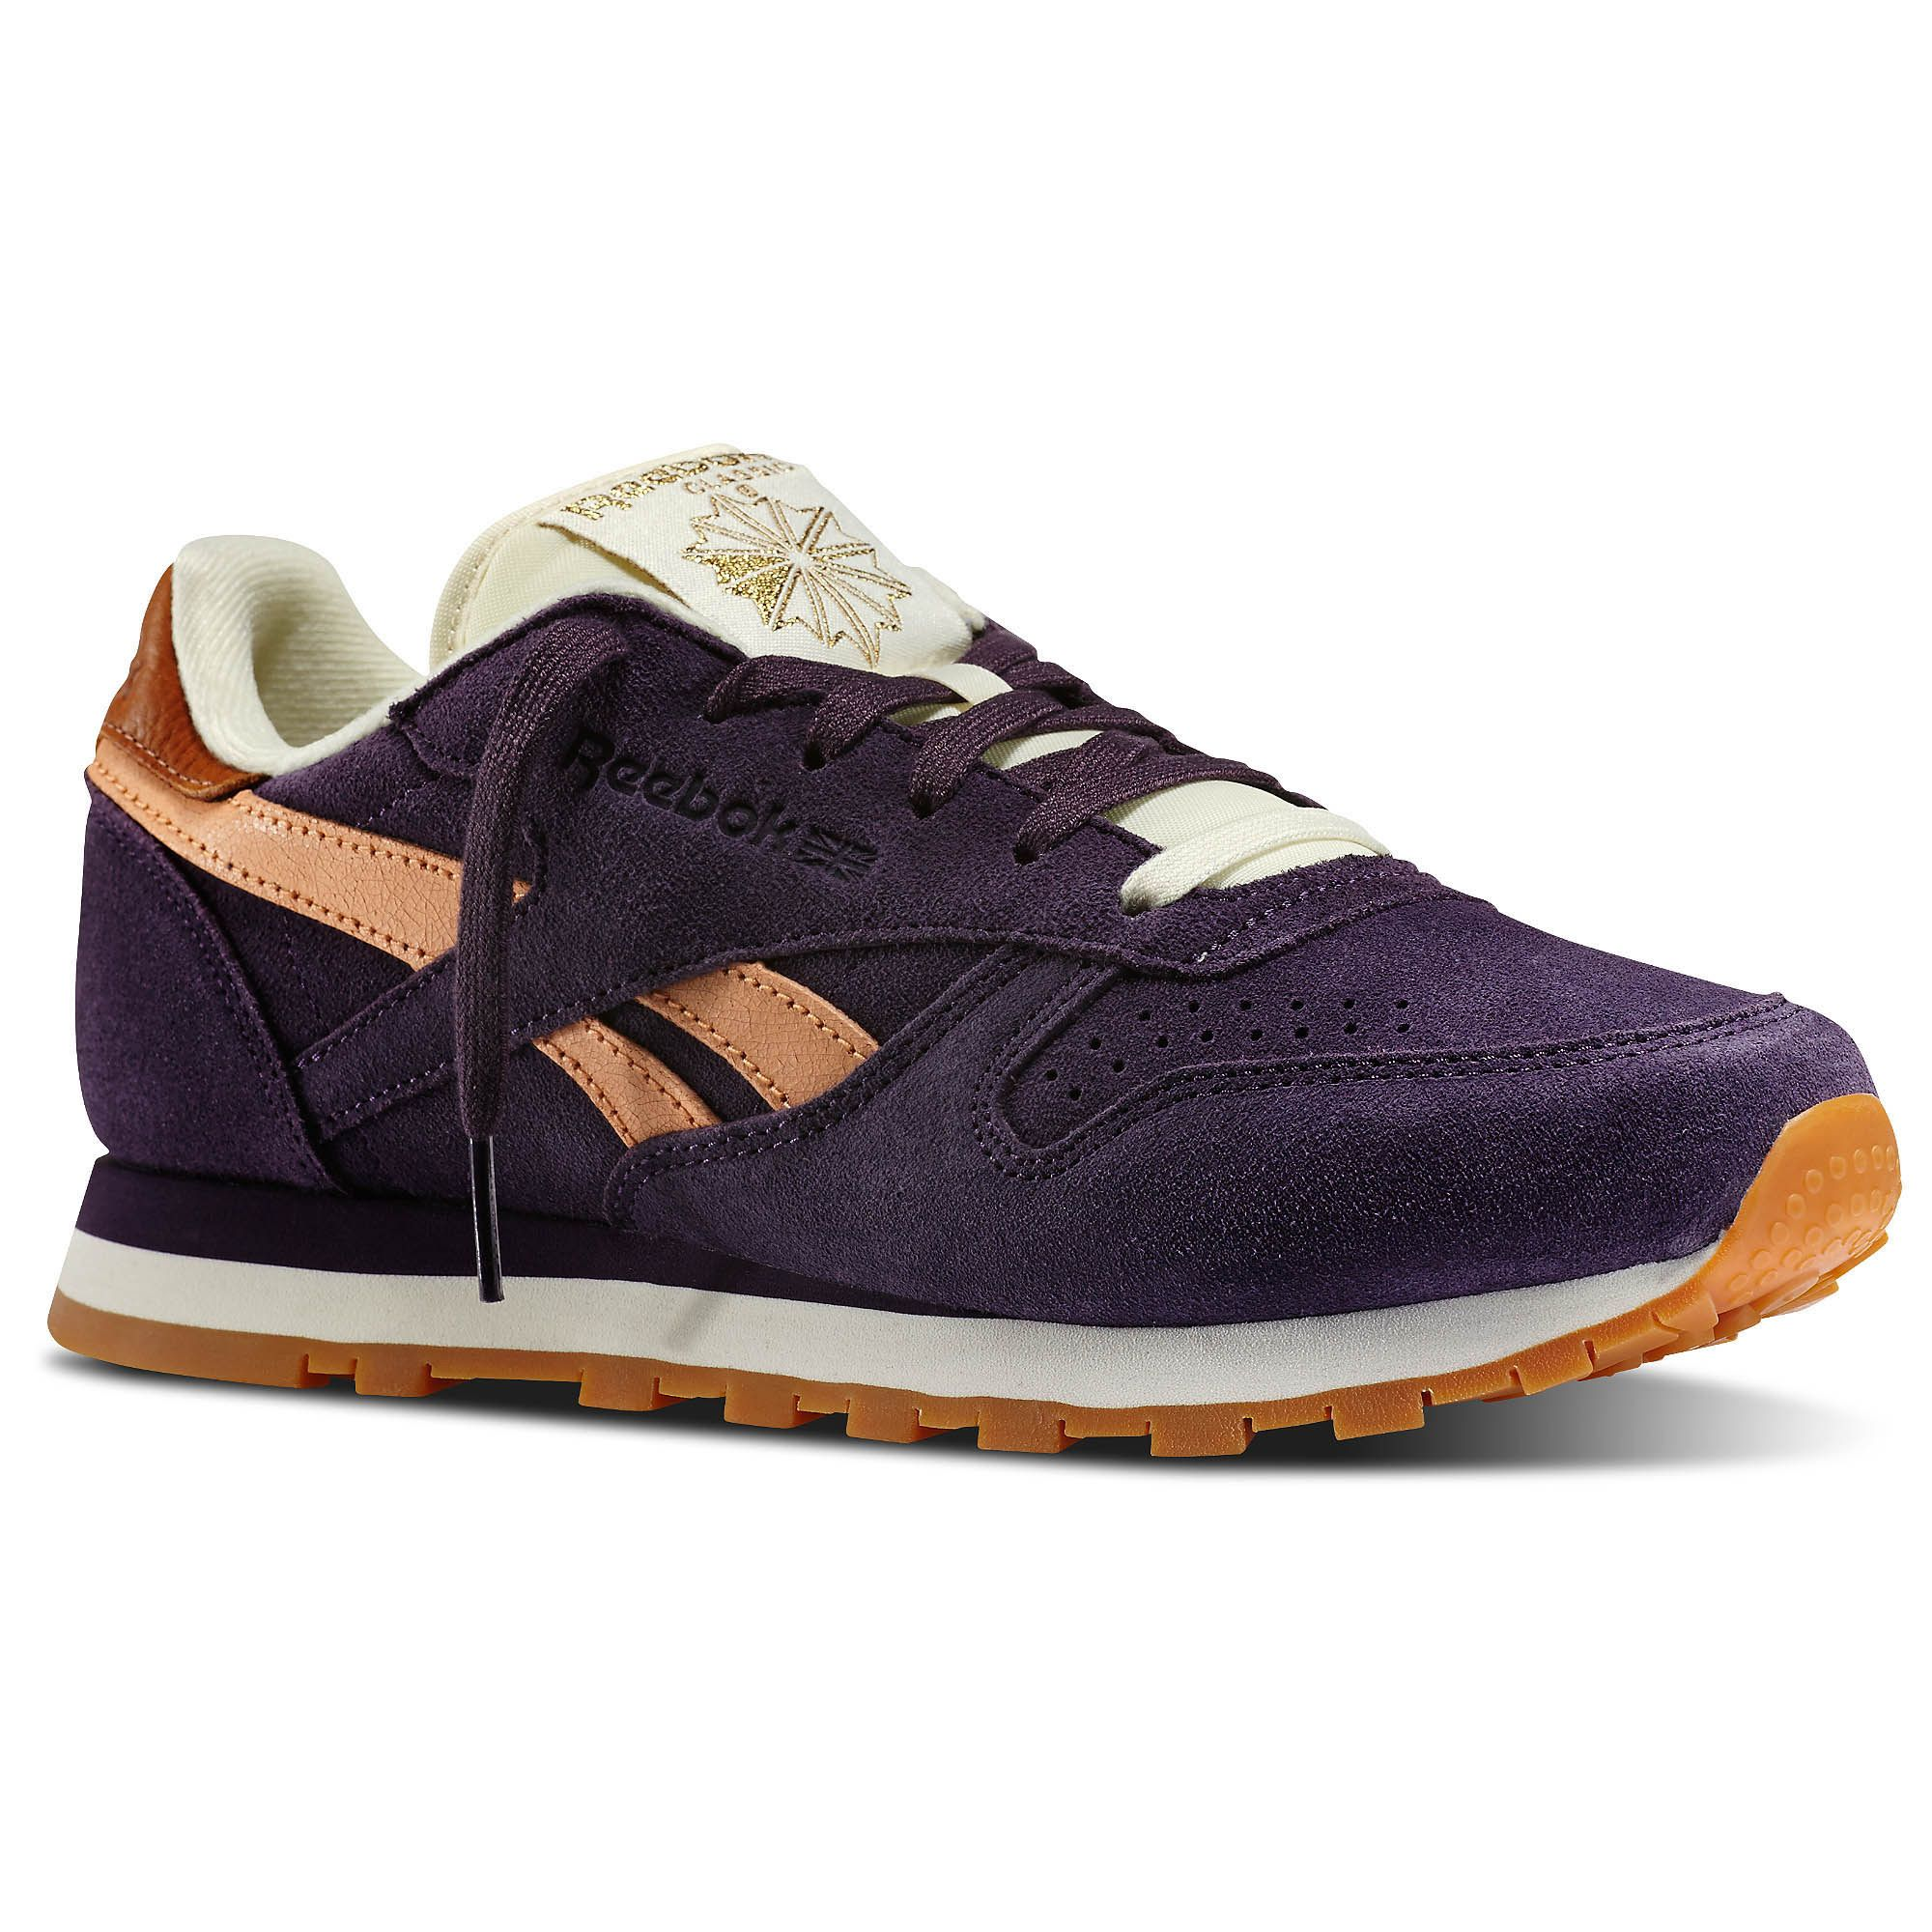 Reebok-running-shoes-and-sportsshoes-for-women (8)